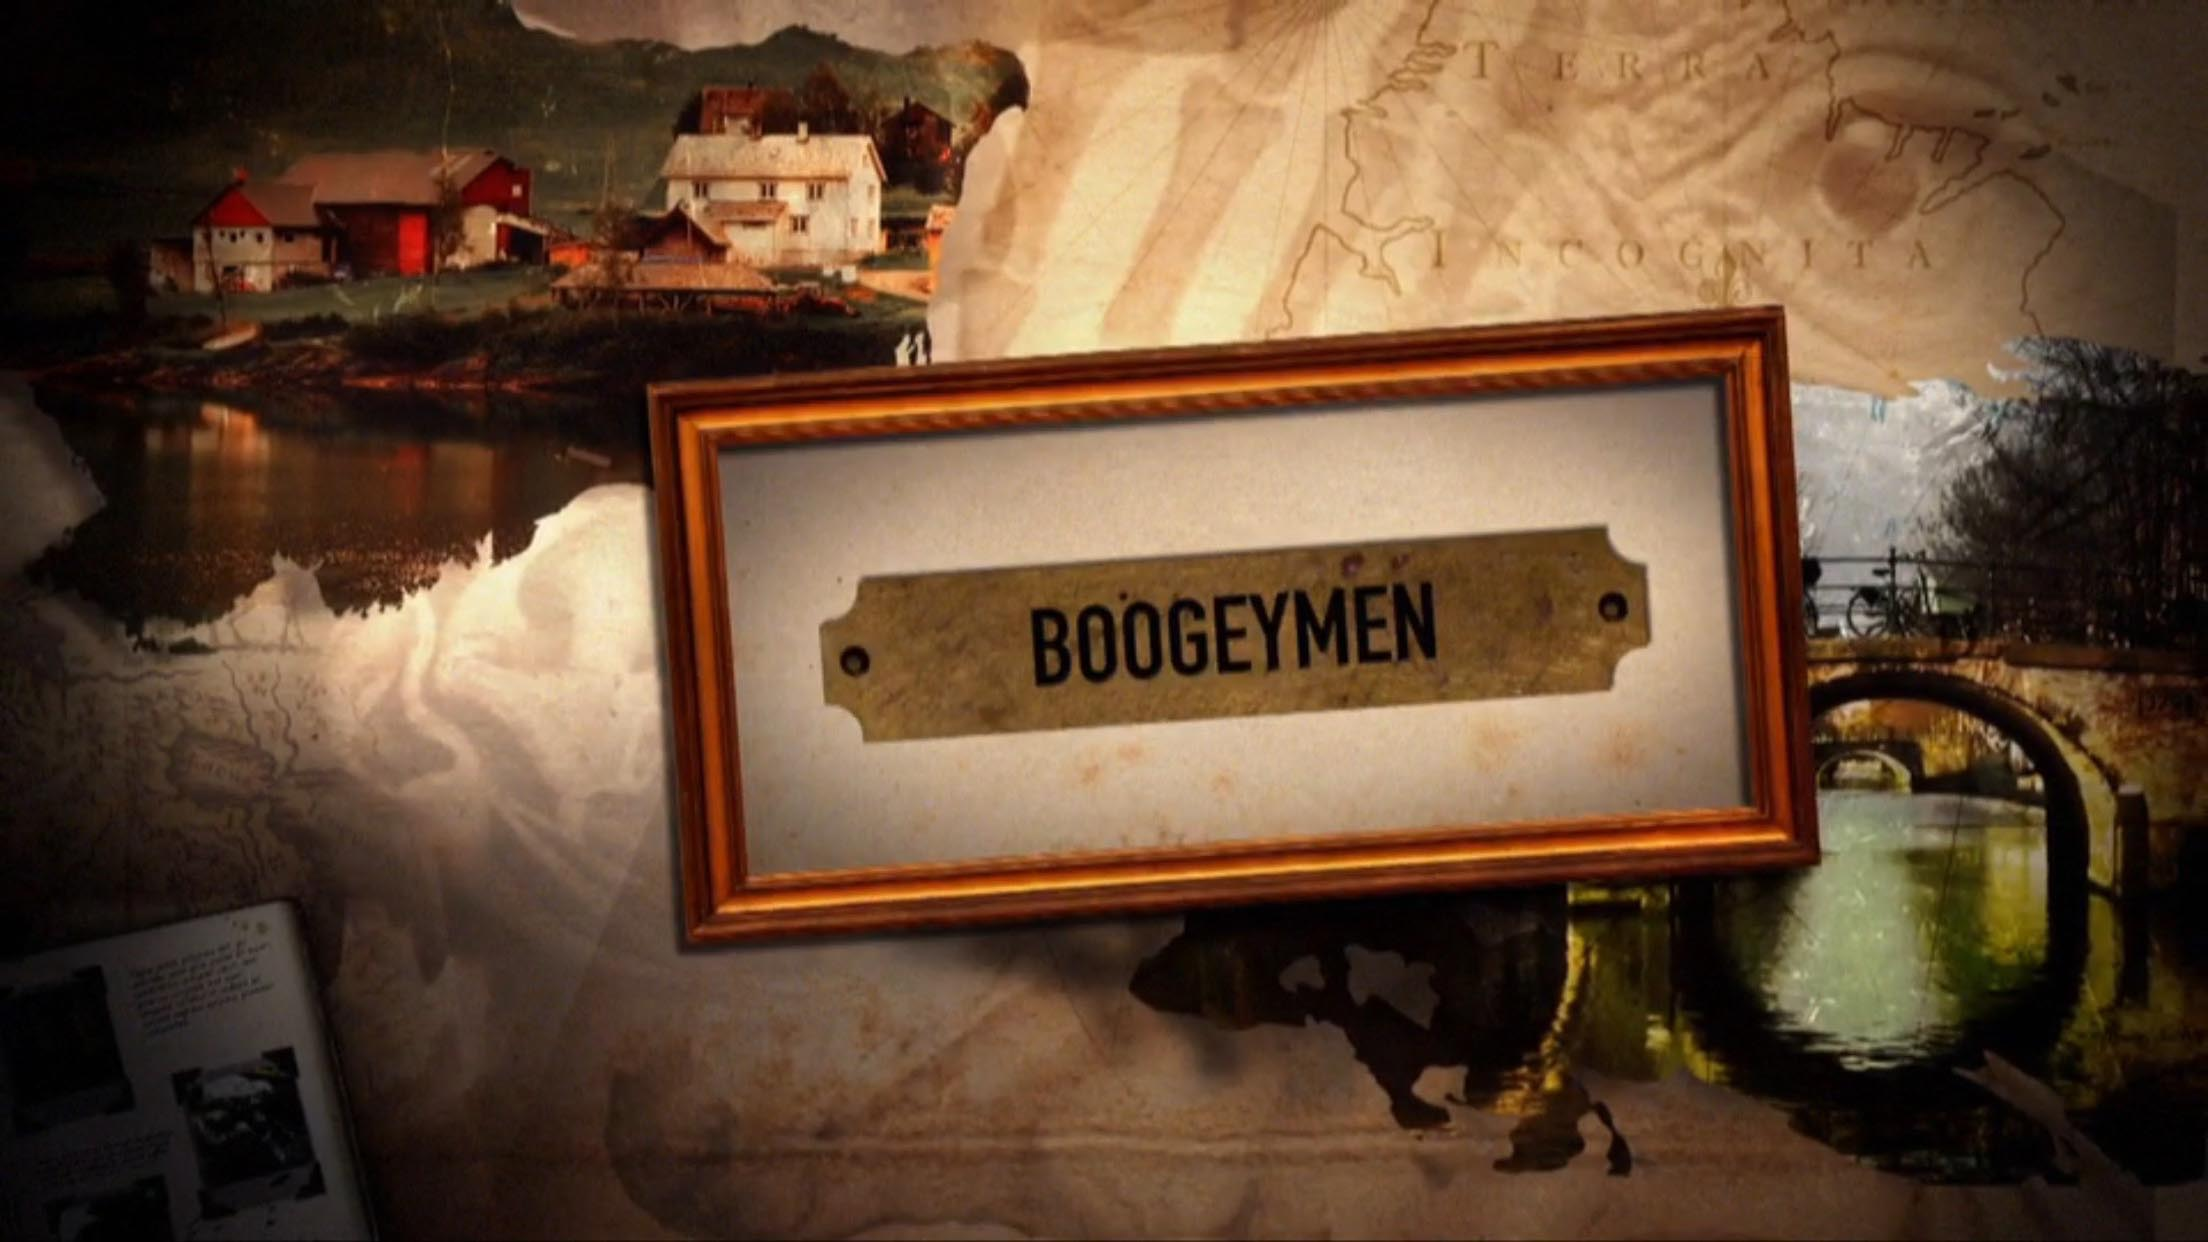 Watch NORMIE on BOOGEYMEN!